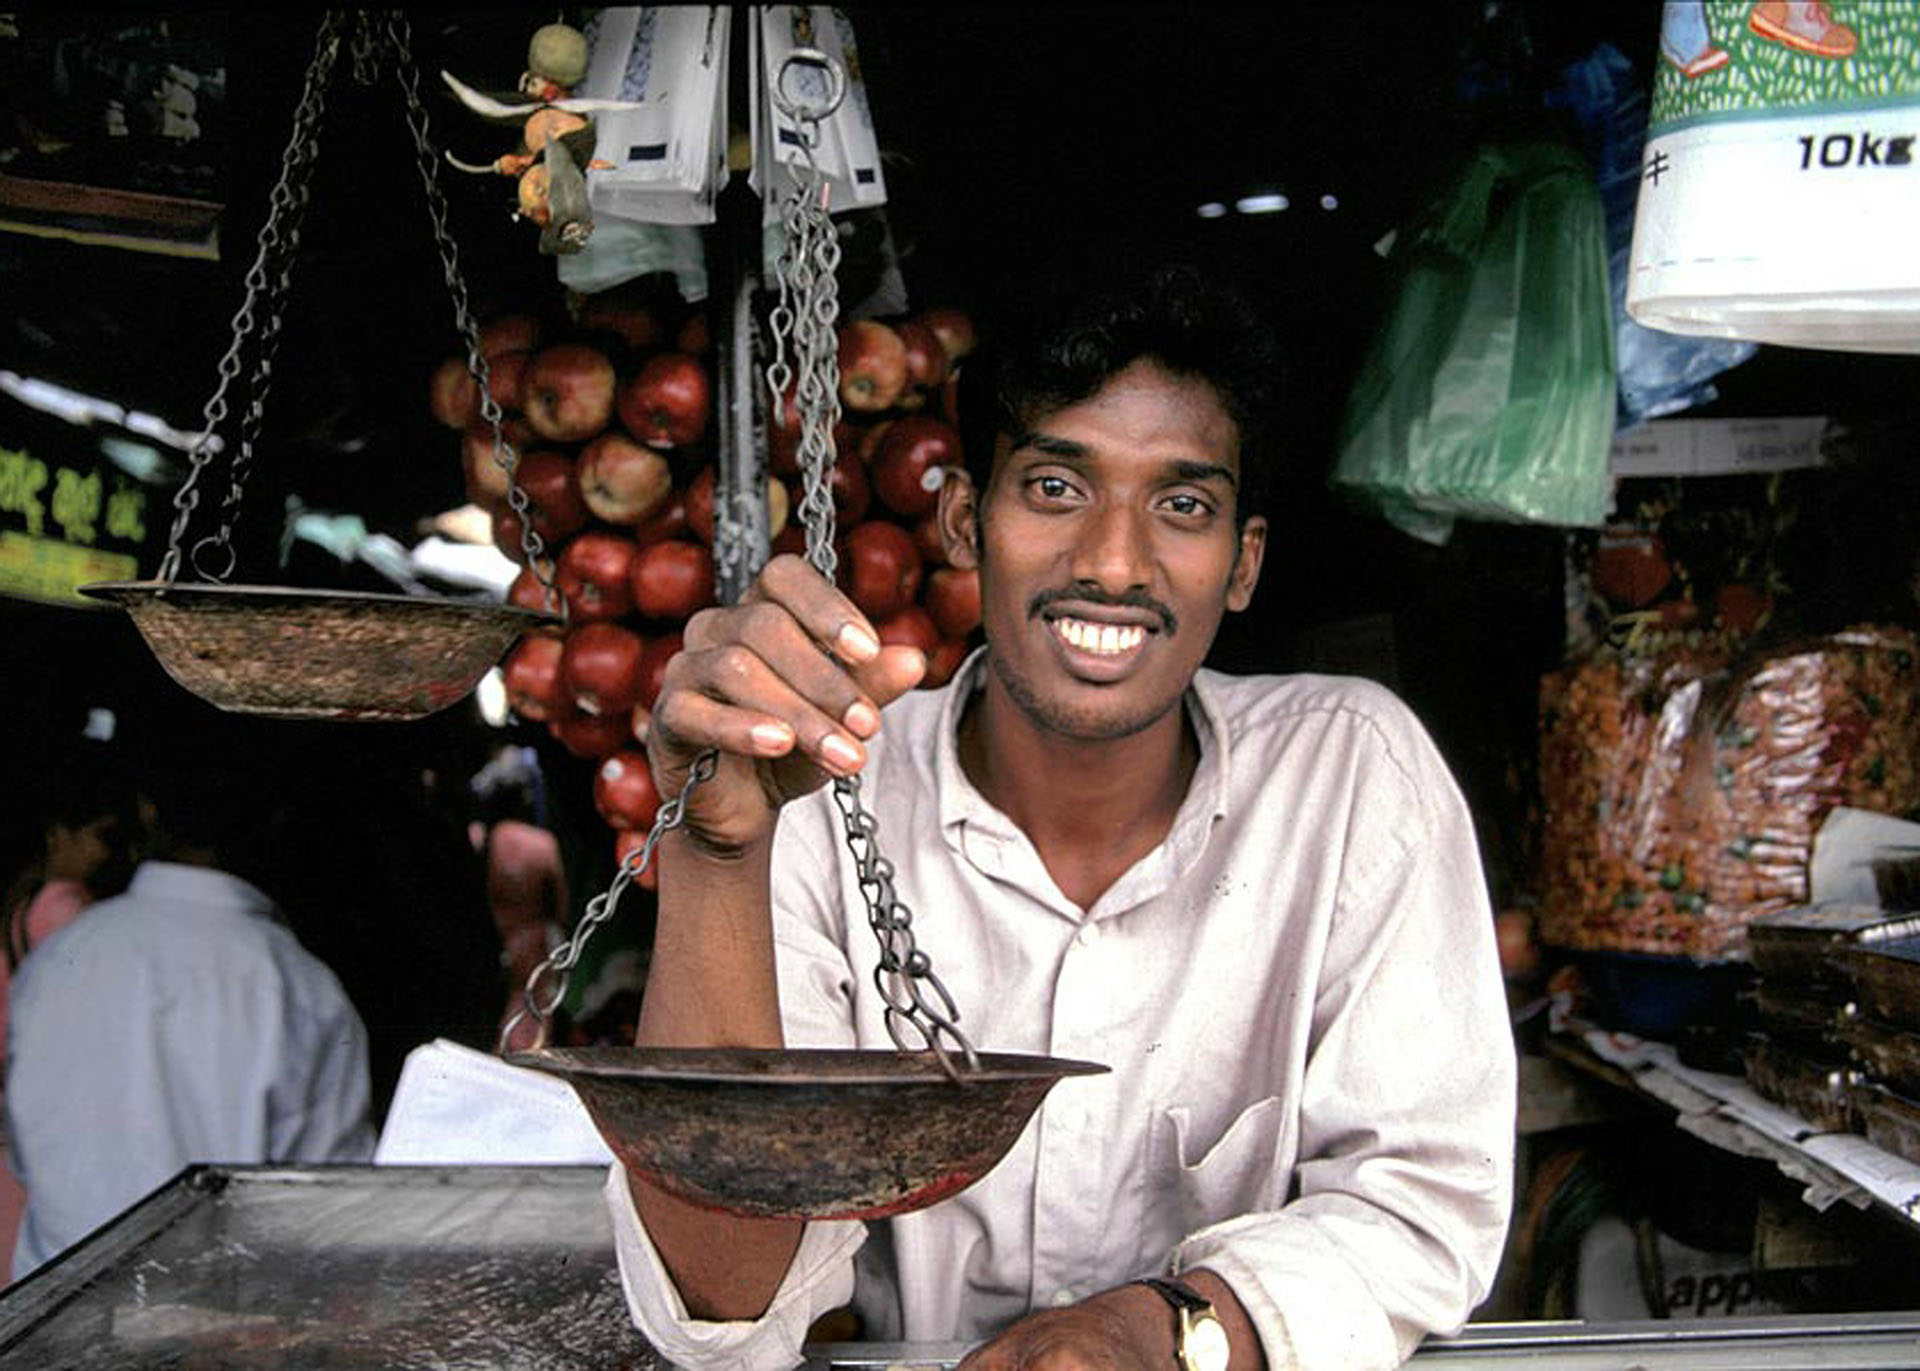 You will always find the Sri Lankan locals smiling!